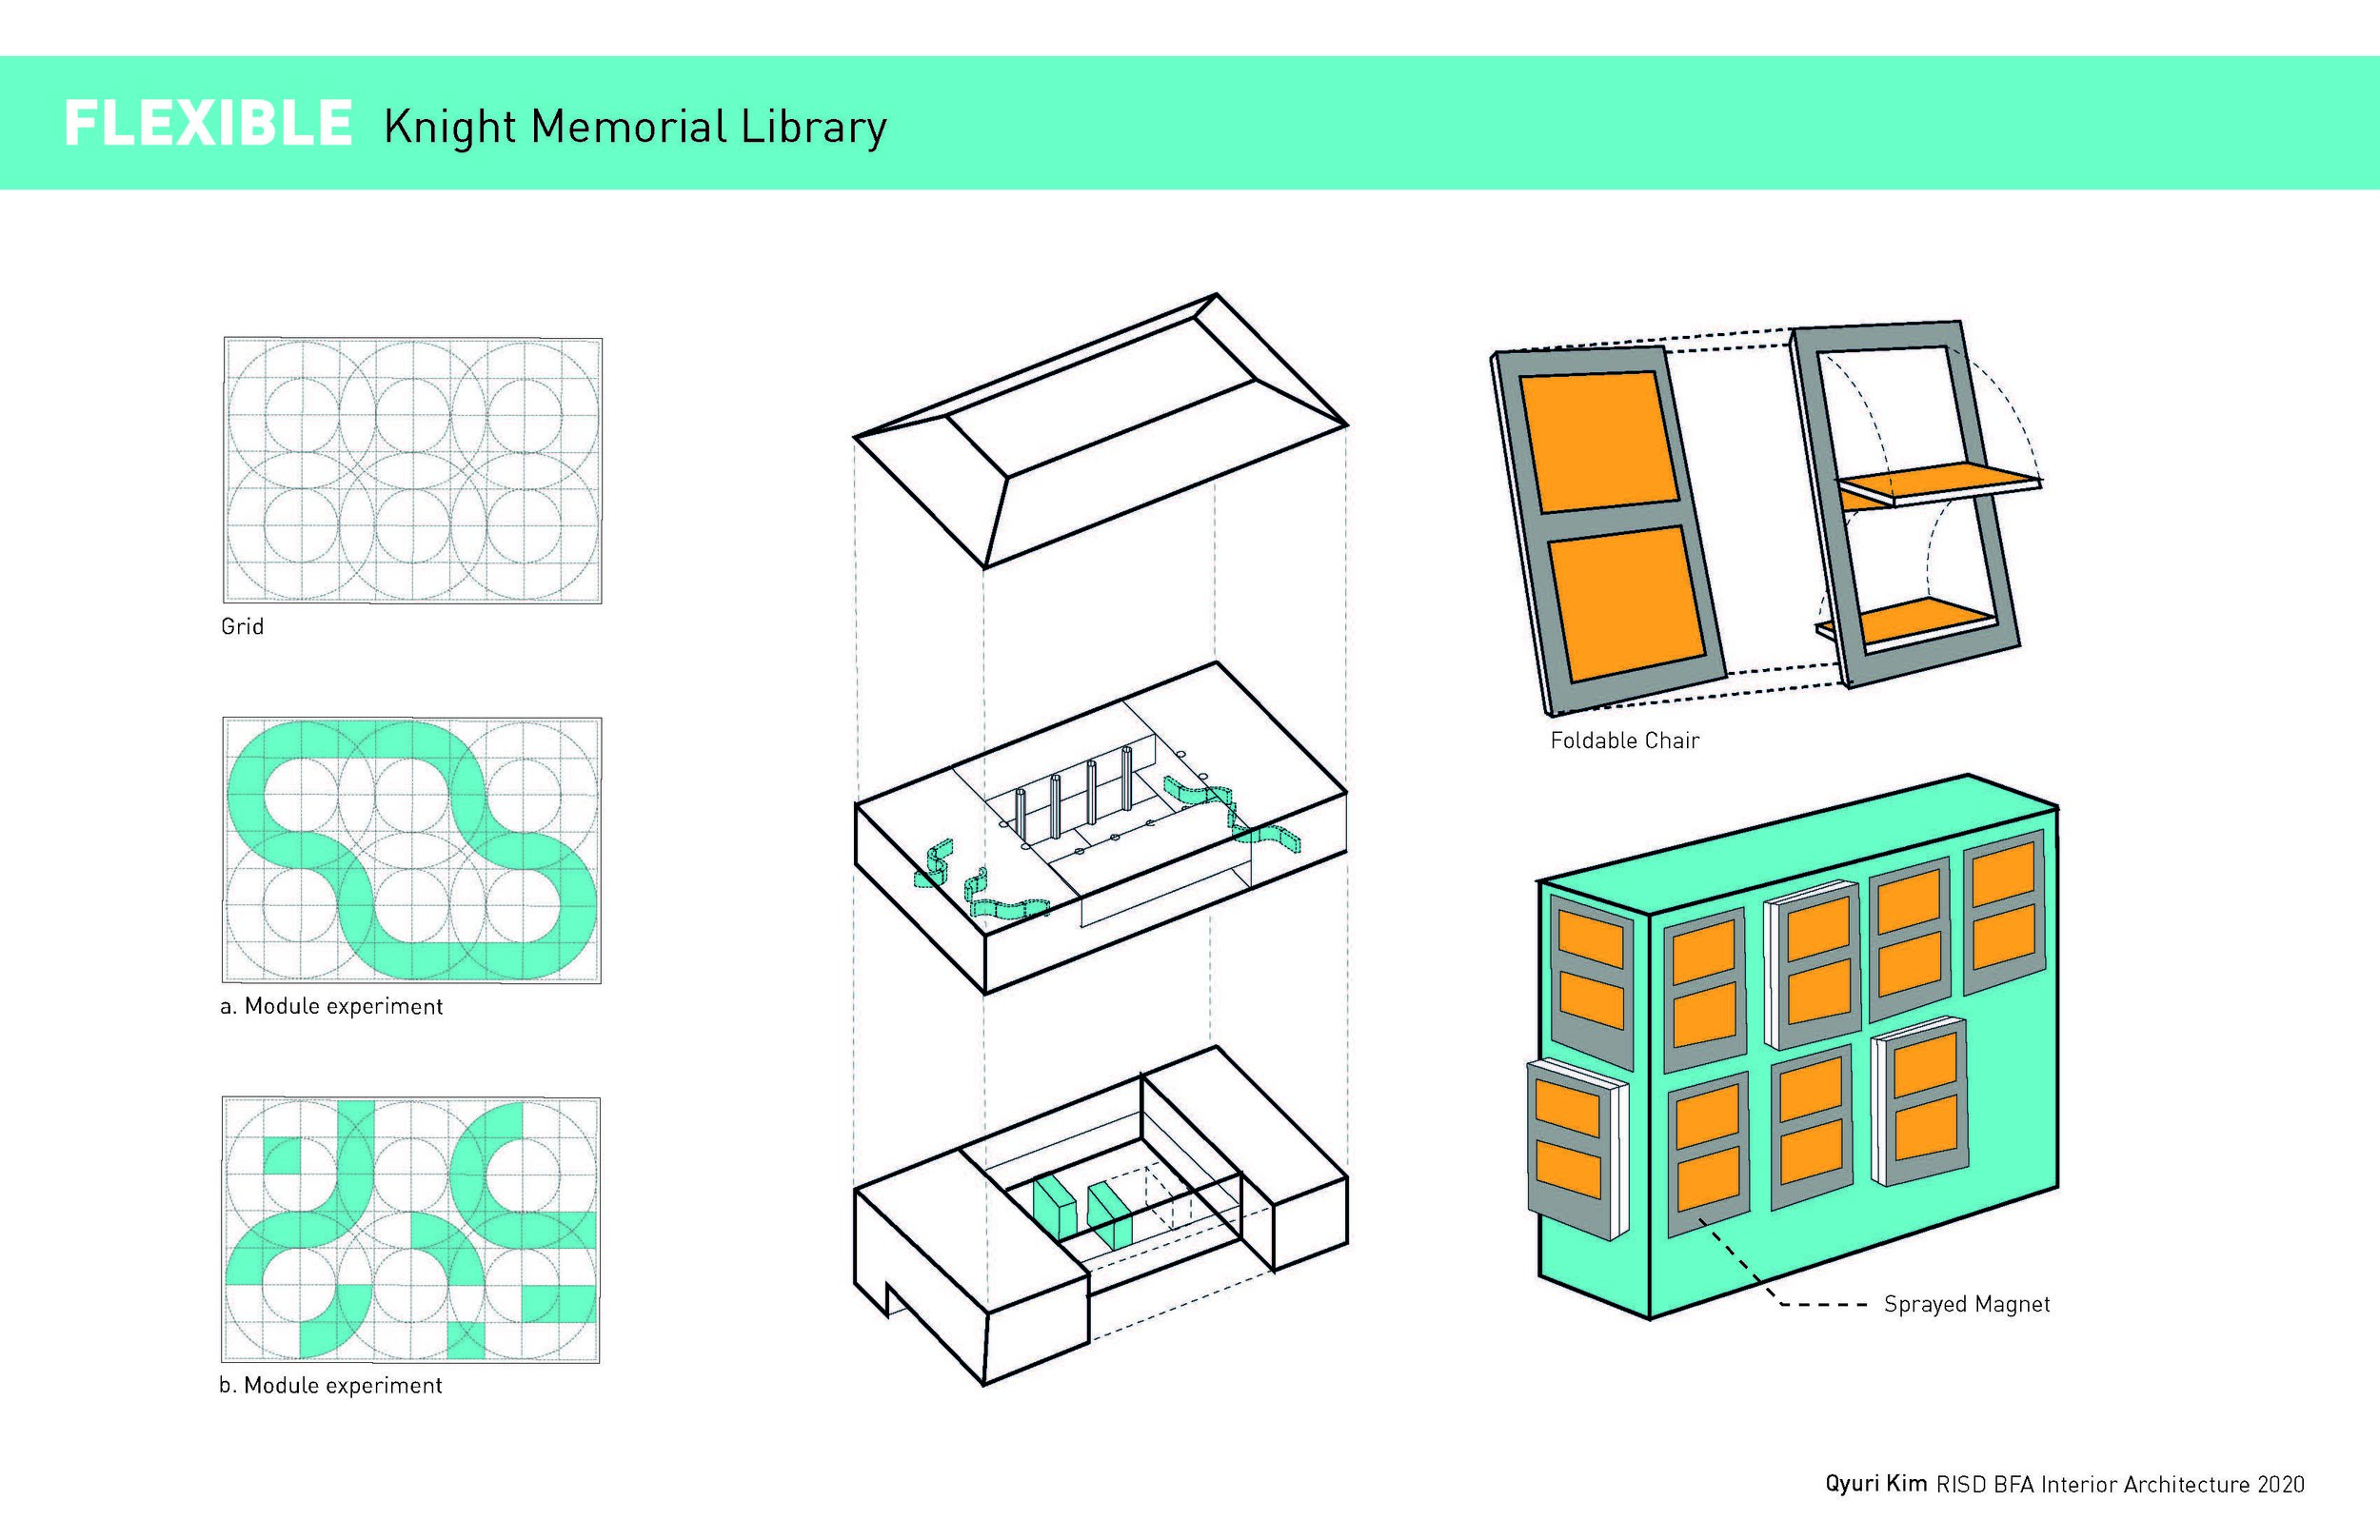 The library holds various activities for different purposes which requires dynamic and frequent changes in space. With modular furniture, the library becomes more flexible and interesting space. It also makes the library an interactive space because the users can actually change the composition. Furniture like desk, bookshelf, and chair can be modular that can create different partitions and become walls themselves. The shape of modular furniture is inspired from basic geometry: quarter of a circle and a rectangle. By combining and joining them in multiple ways, the library can be more dynamic and easily transformed into different units. Applying similar theory, the basement is an open space with modular walls and foldable chairs. The chairs are made with lightweight material and applied magnet with spray. When they are not in use, the chairs can all be attached on the steel walls, which maximizes the use of space.